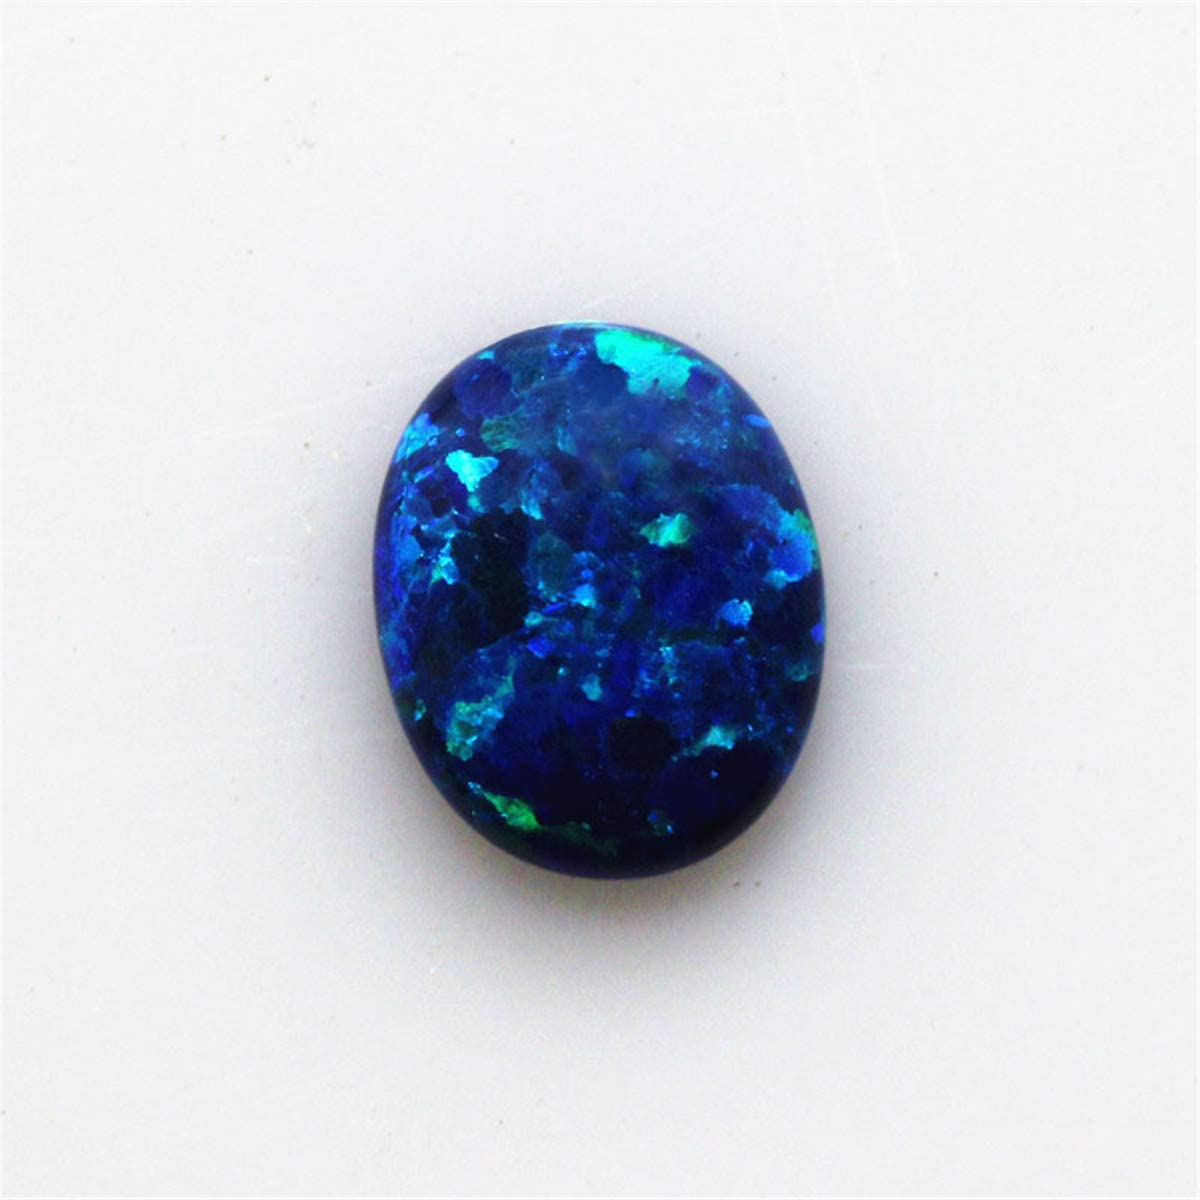 High Quality Natural Blue Opal Cabochon 4 Pieces Fabulous Blue Opal Jewelry Making Loose Gemstone#AB4893